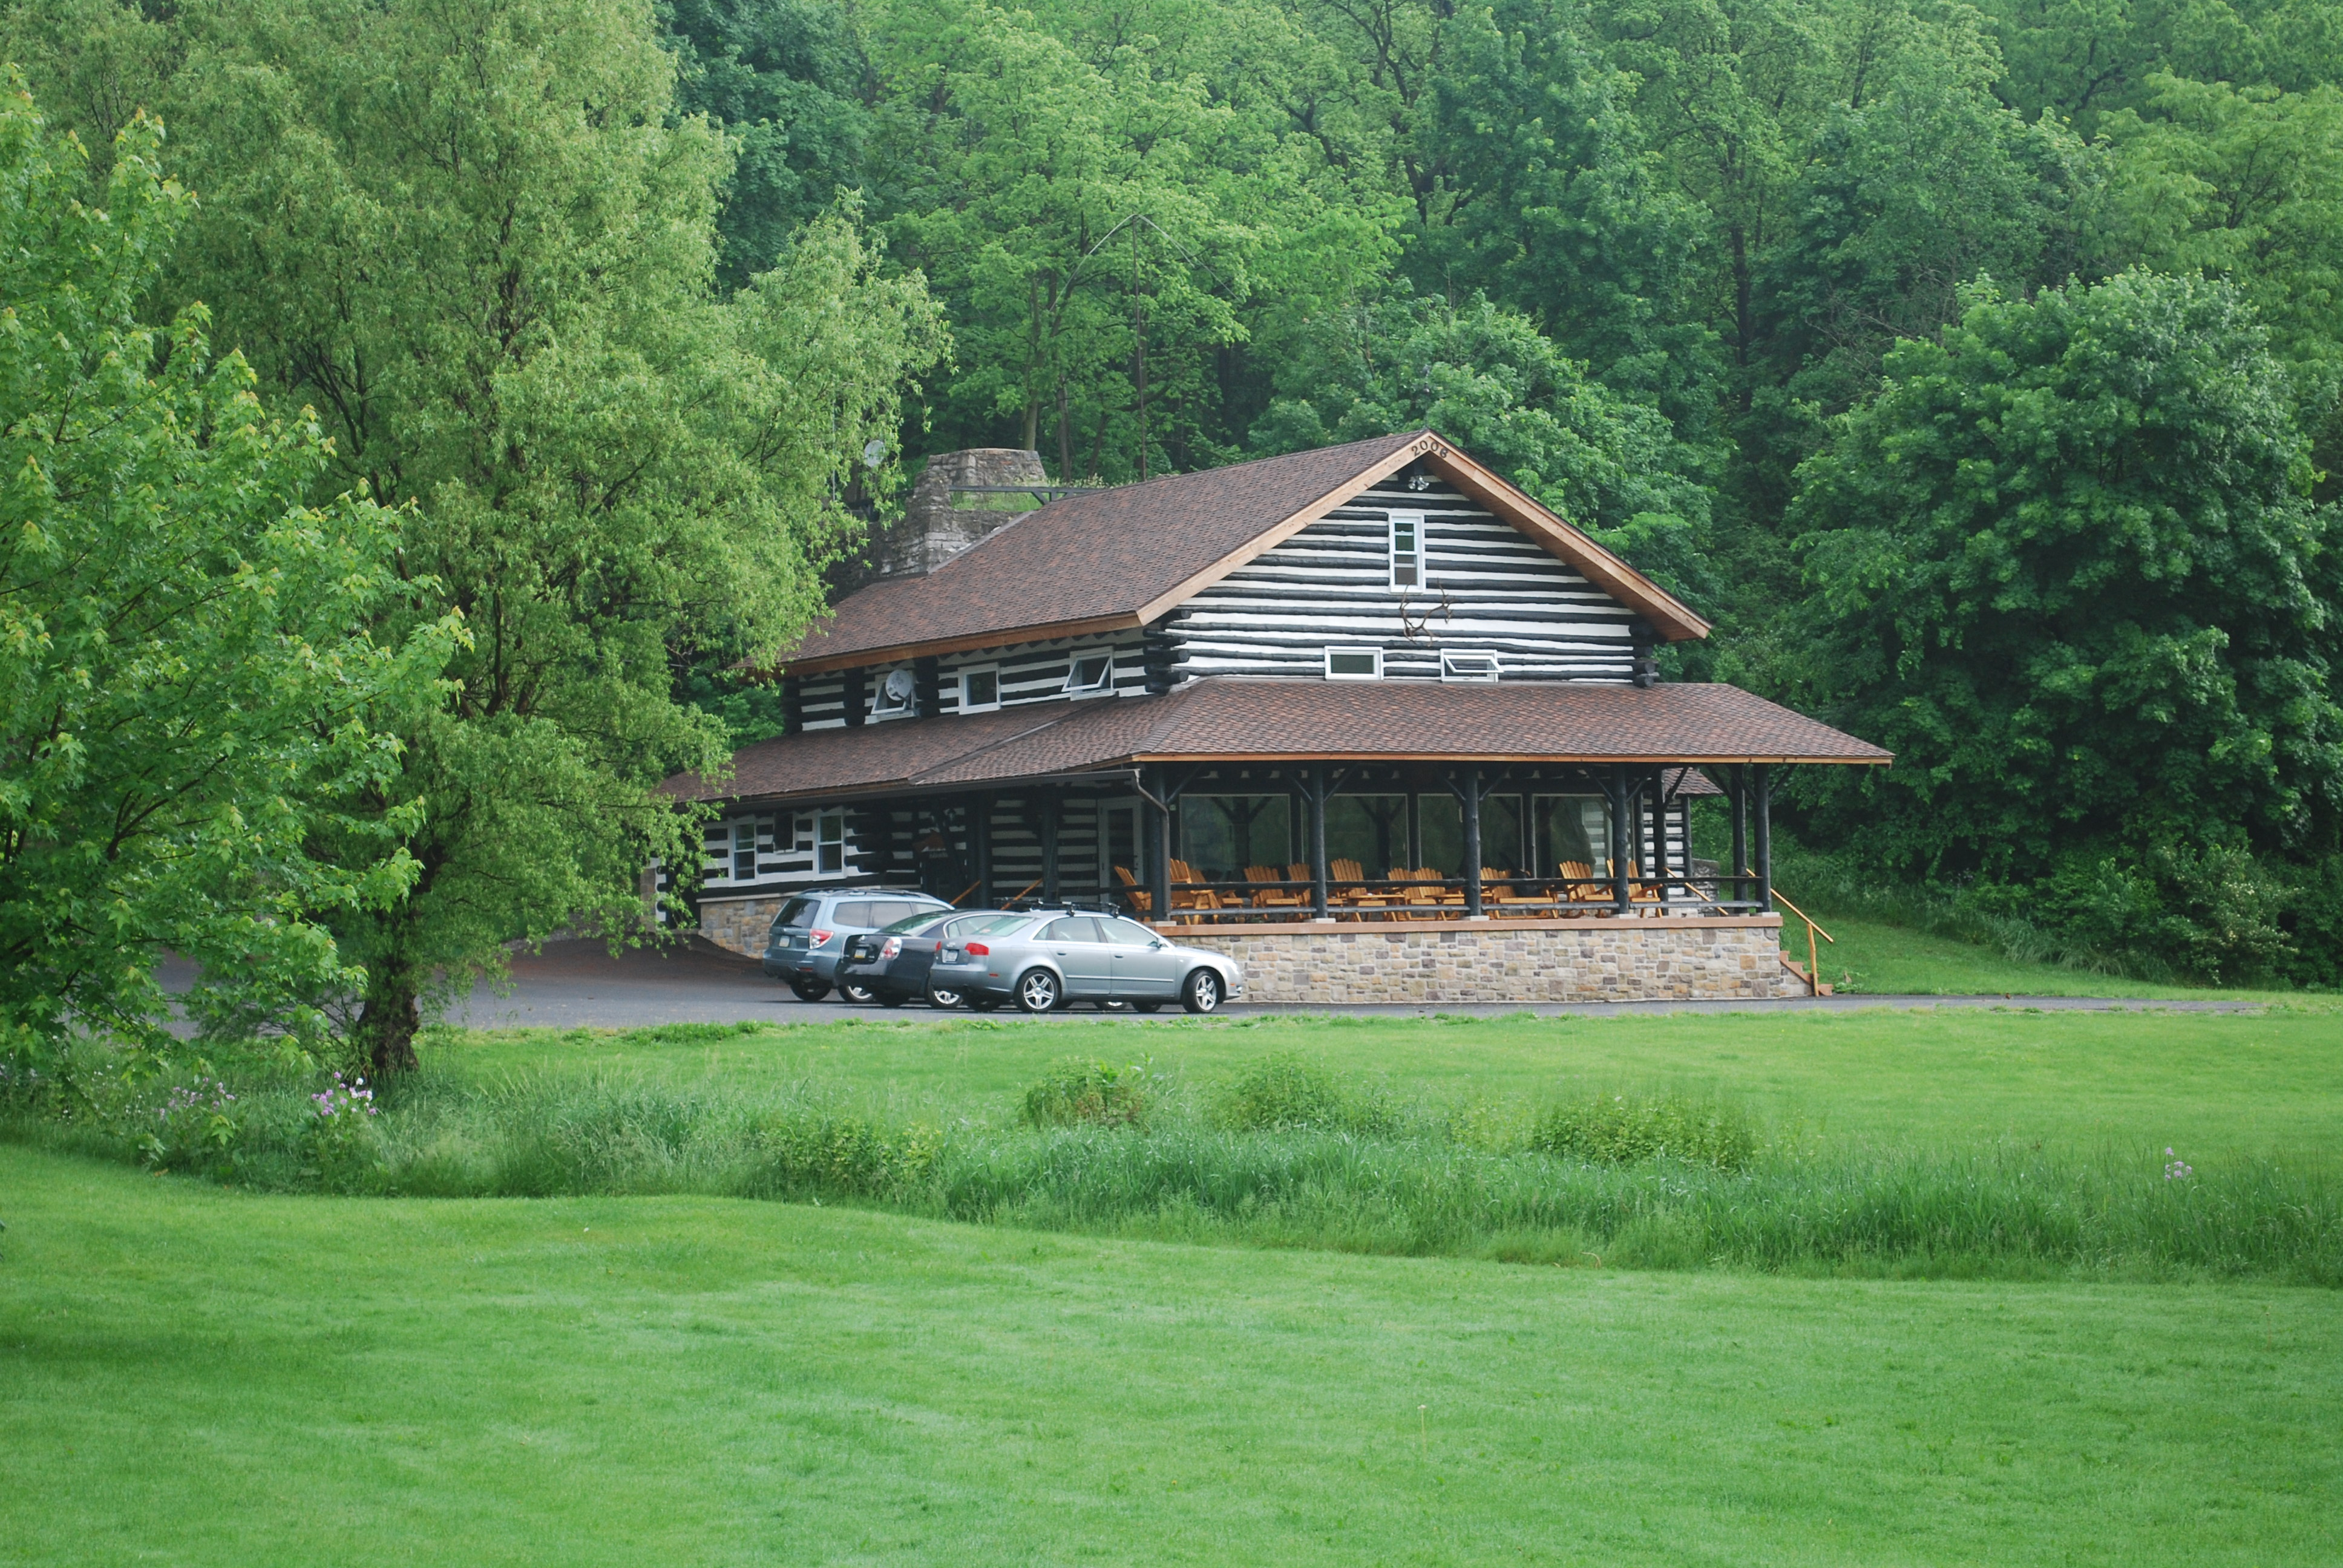 rentals cheap in park pictures ideas cabins of fresh camping glacier cabin flathead pa amp travel national forest best